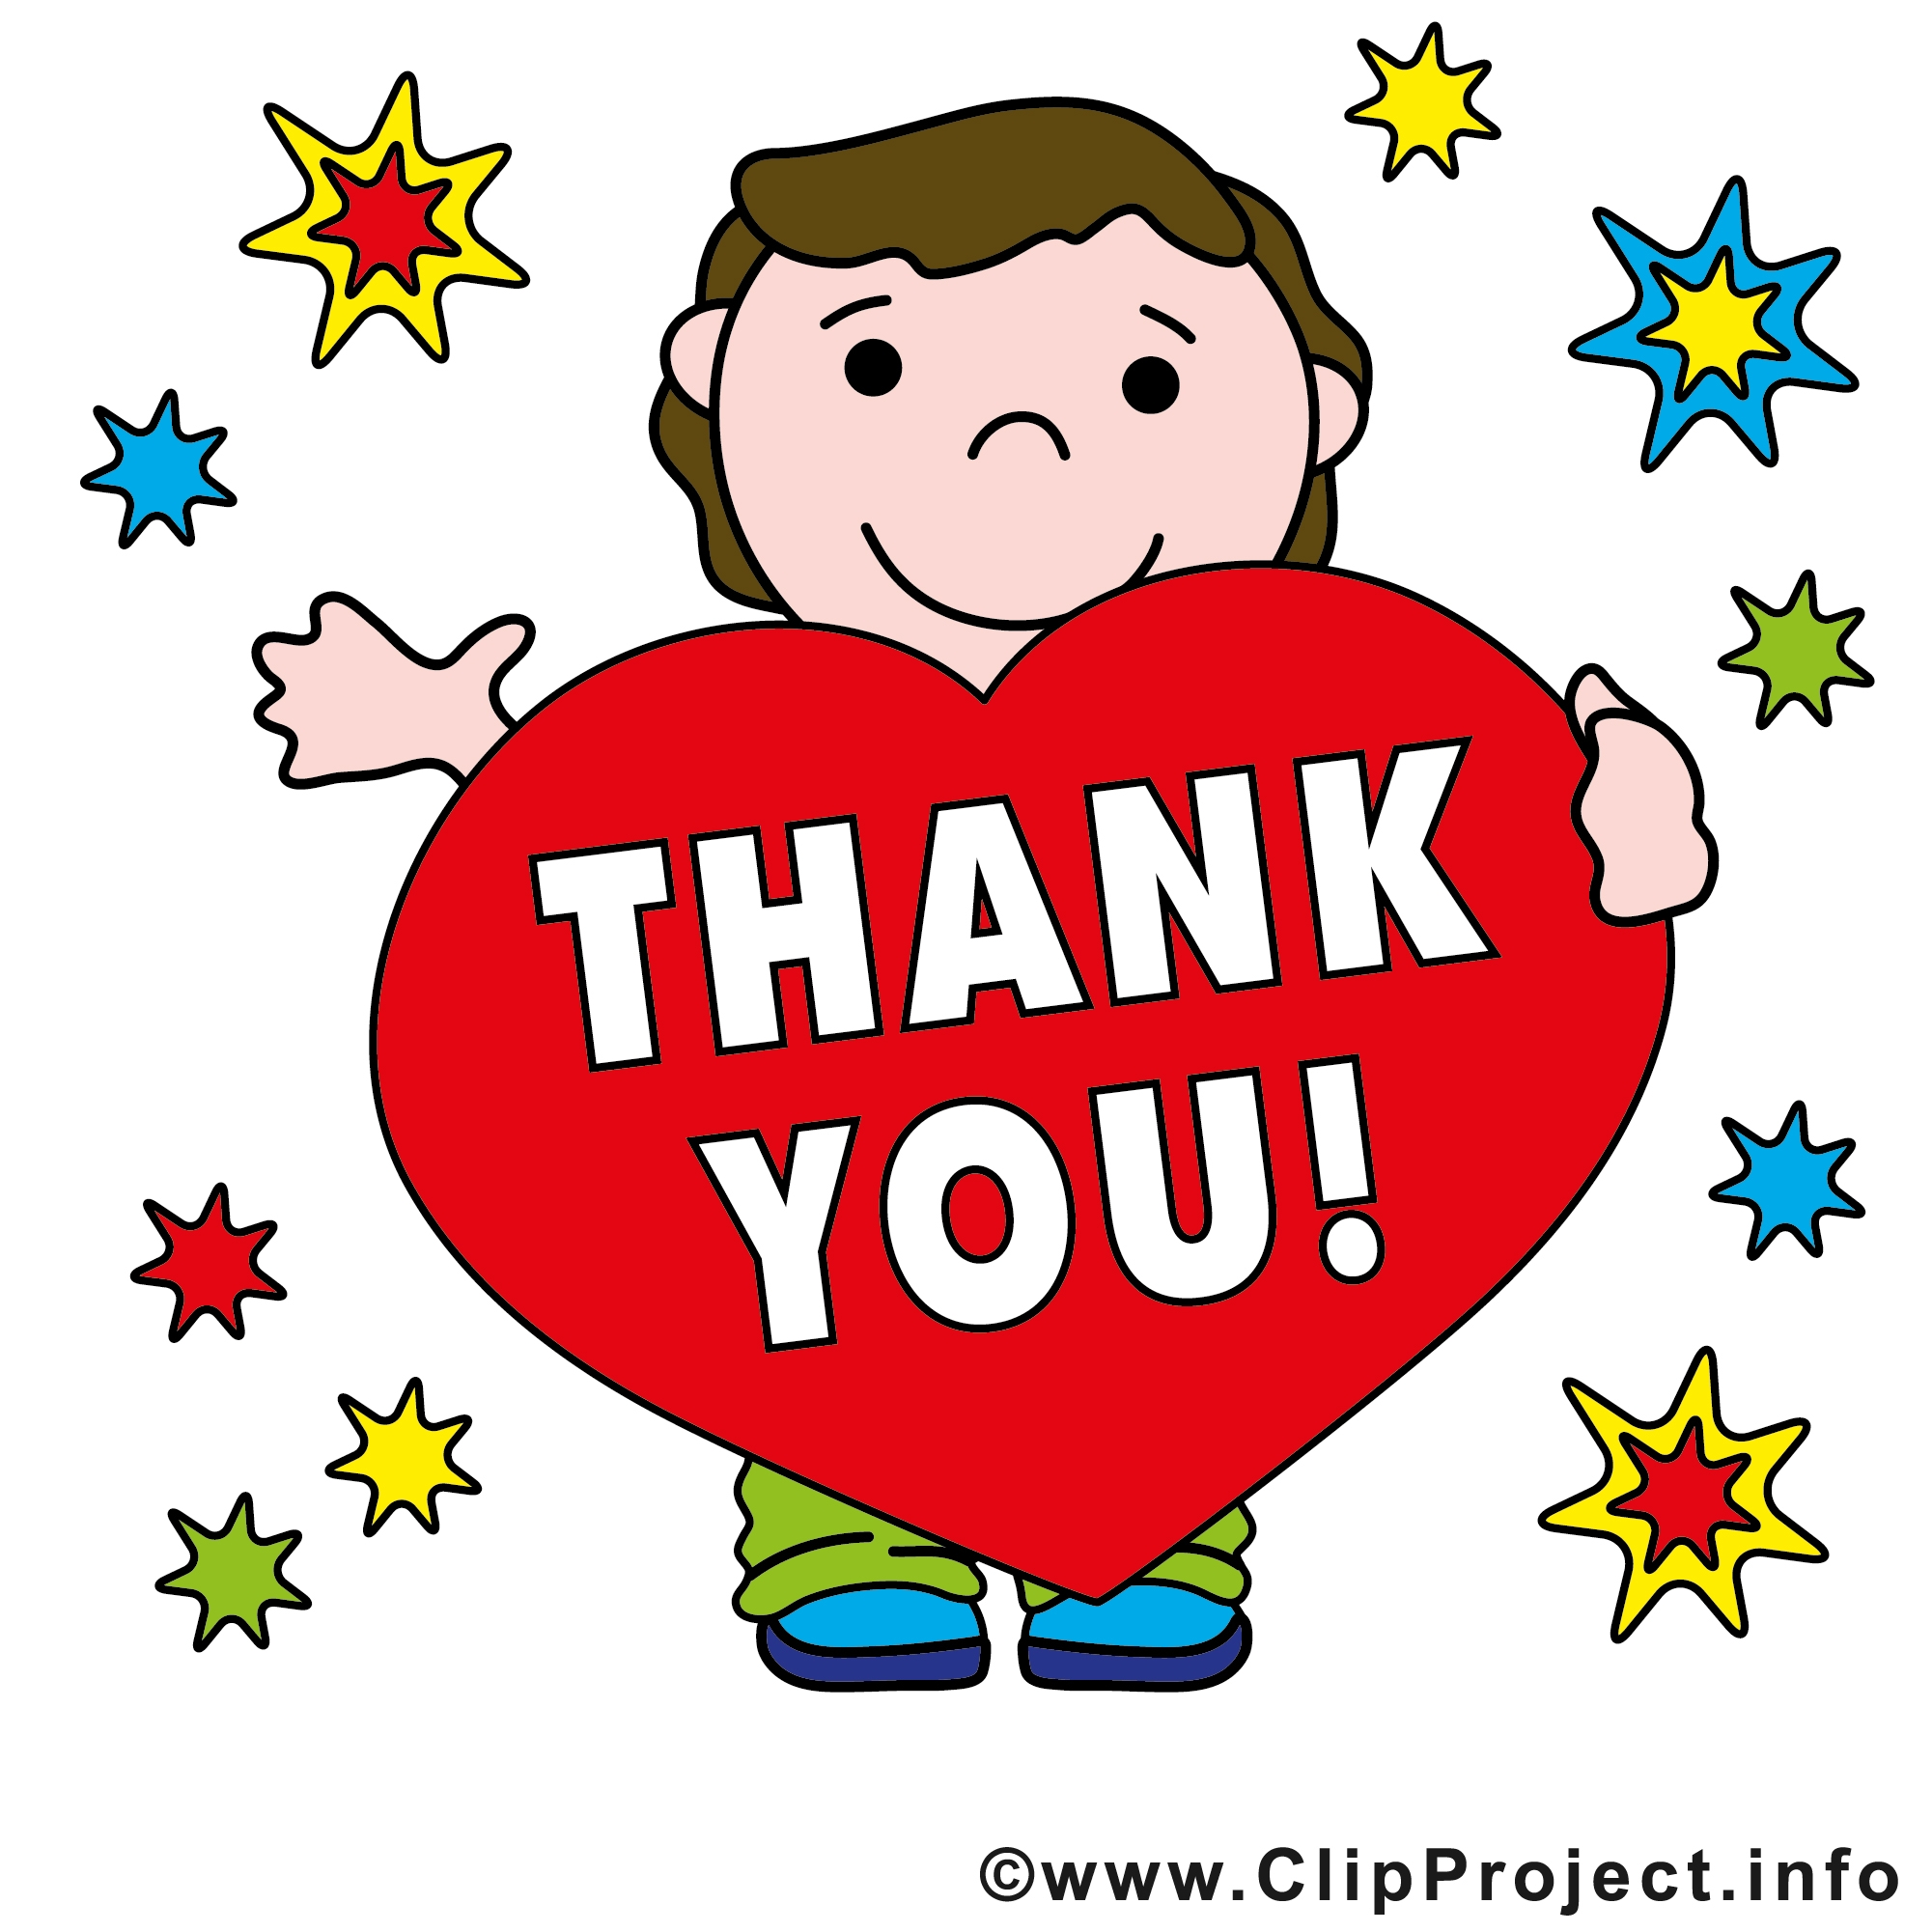 A big thank you clipart clipart free library Thank You Clipart Funny | Free download best Thank You Clipart Funny ... clipart free library